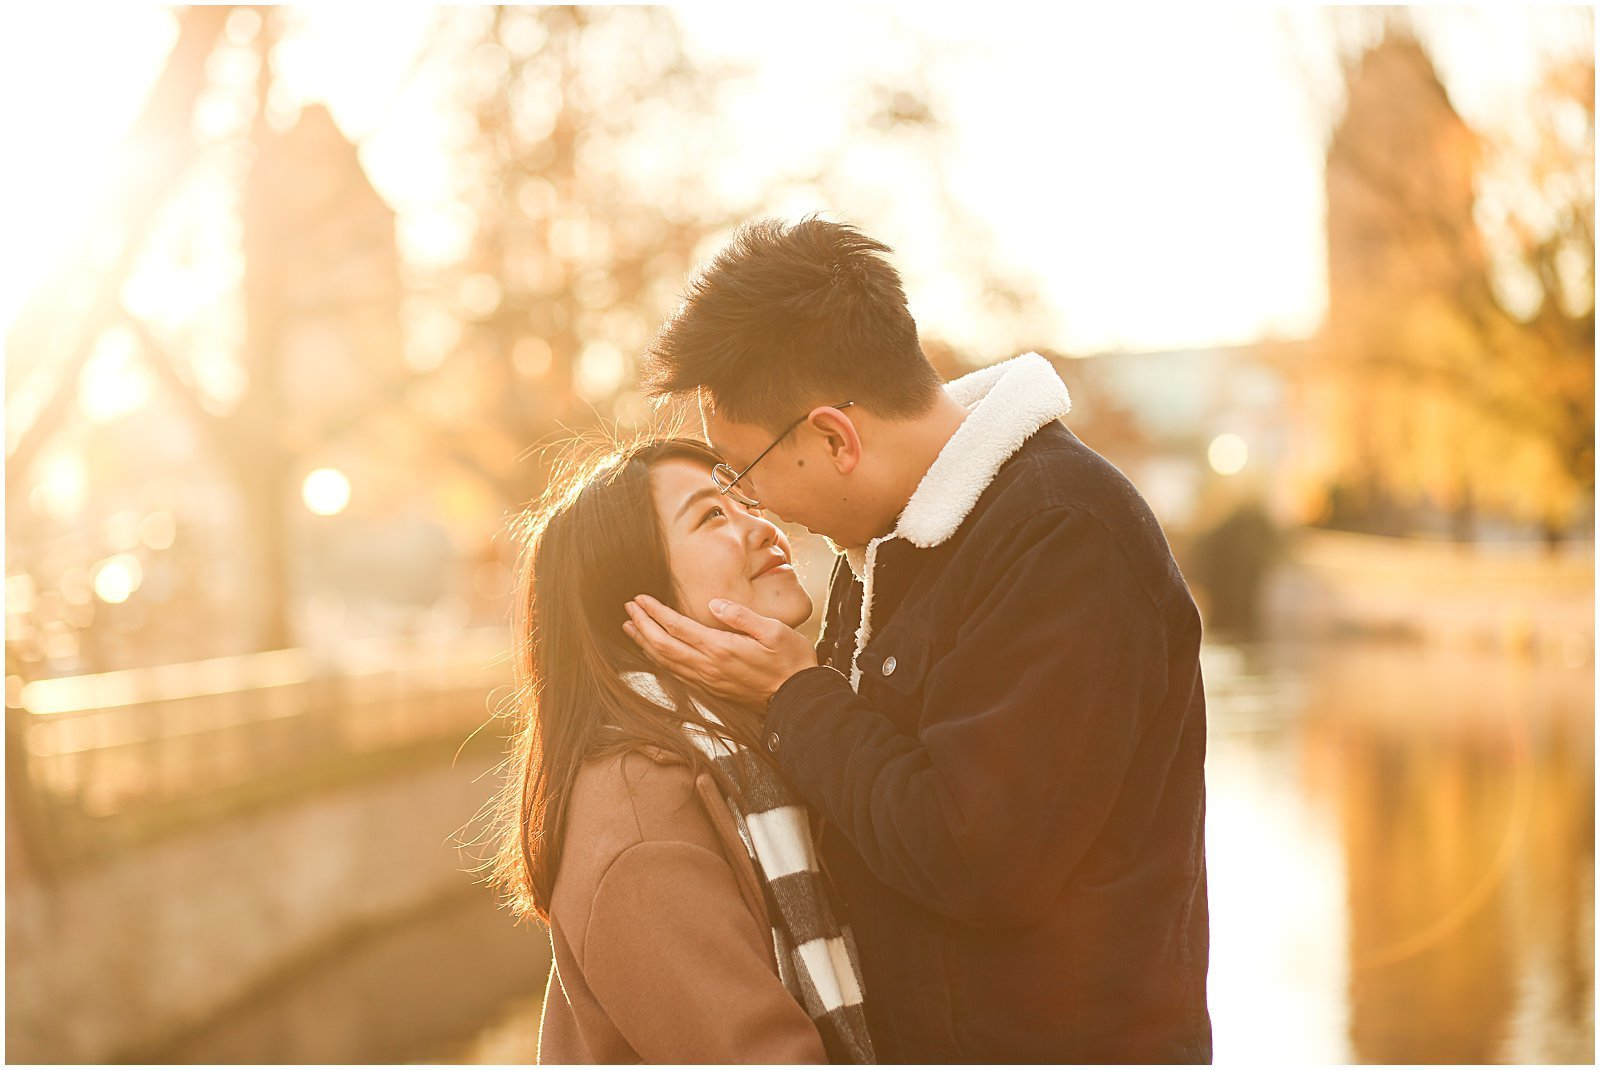 Proposal-Engagement-Photos-Strasbourg-France-Photographer-Helena-Woods_1415